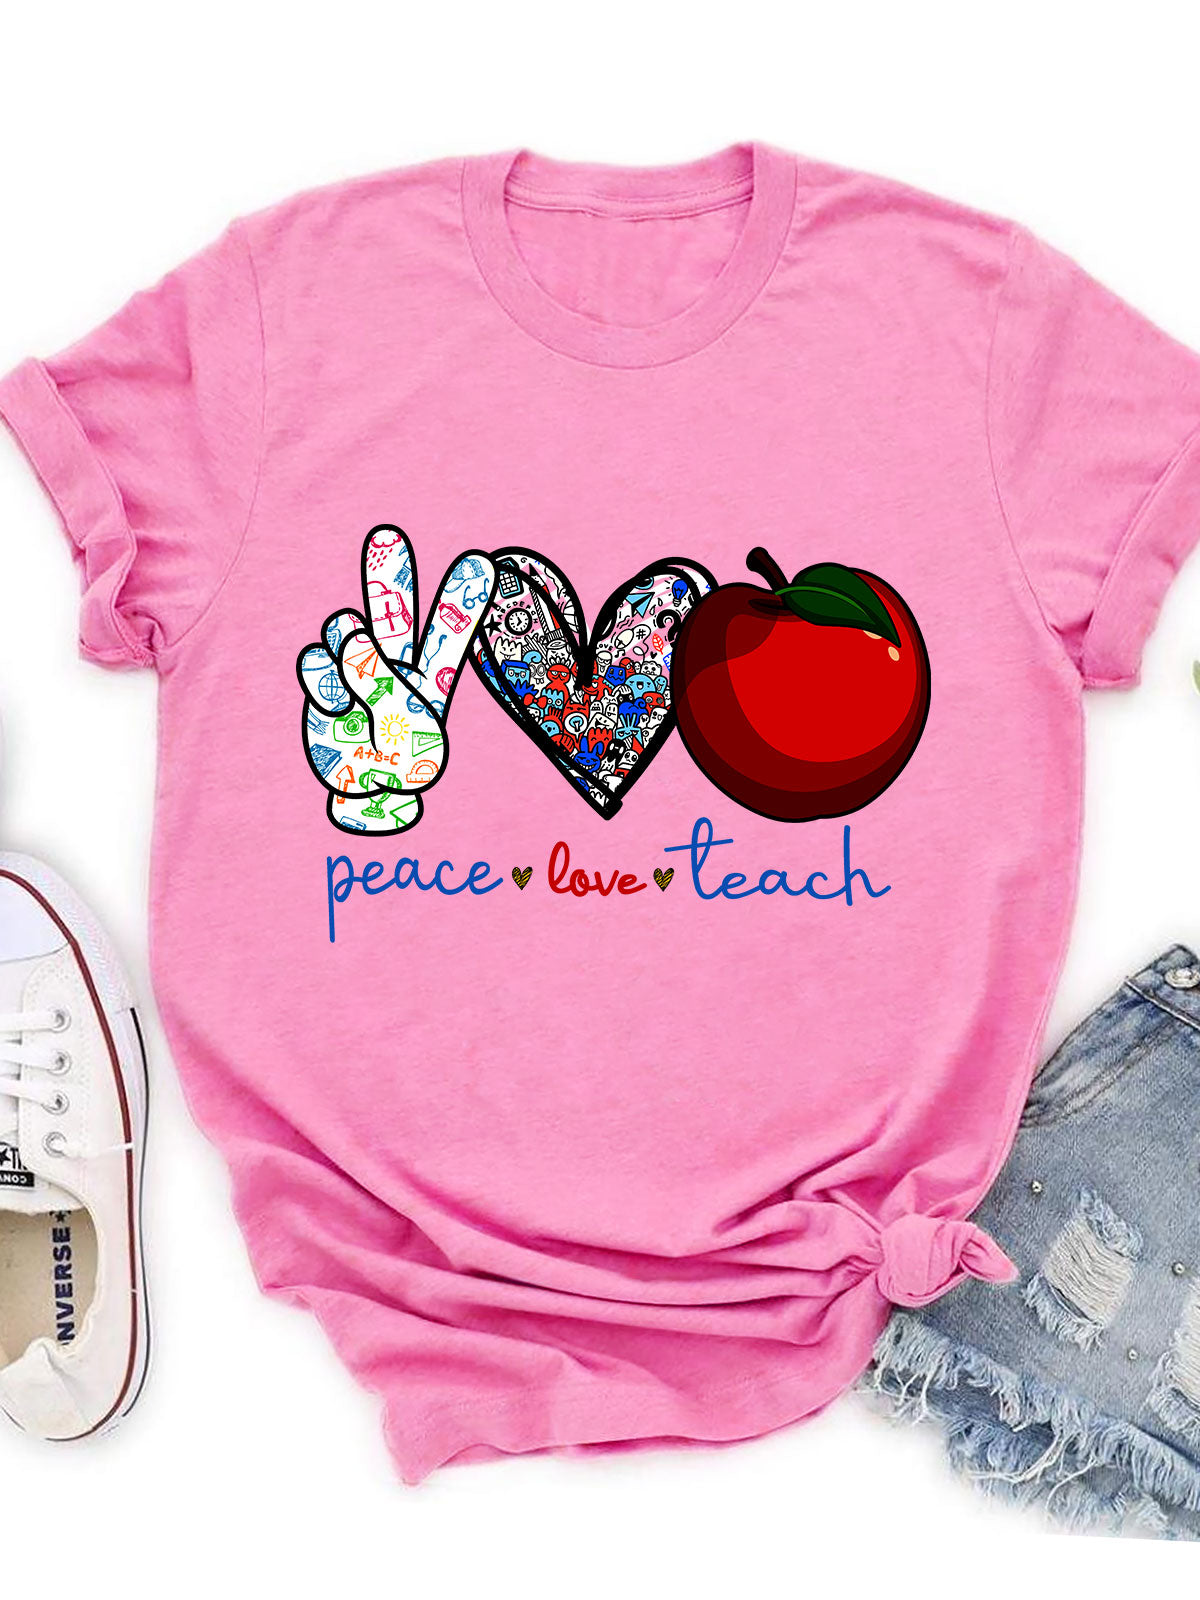 Unisex T-shirt - Peace Love Teach T-shirt - Teacher T-shirt - 8647